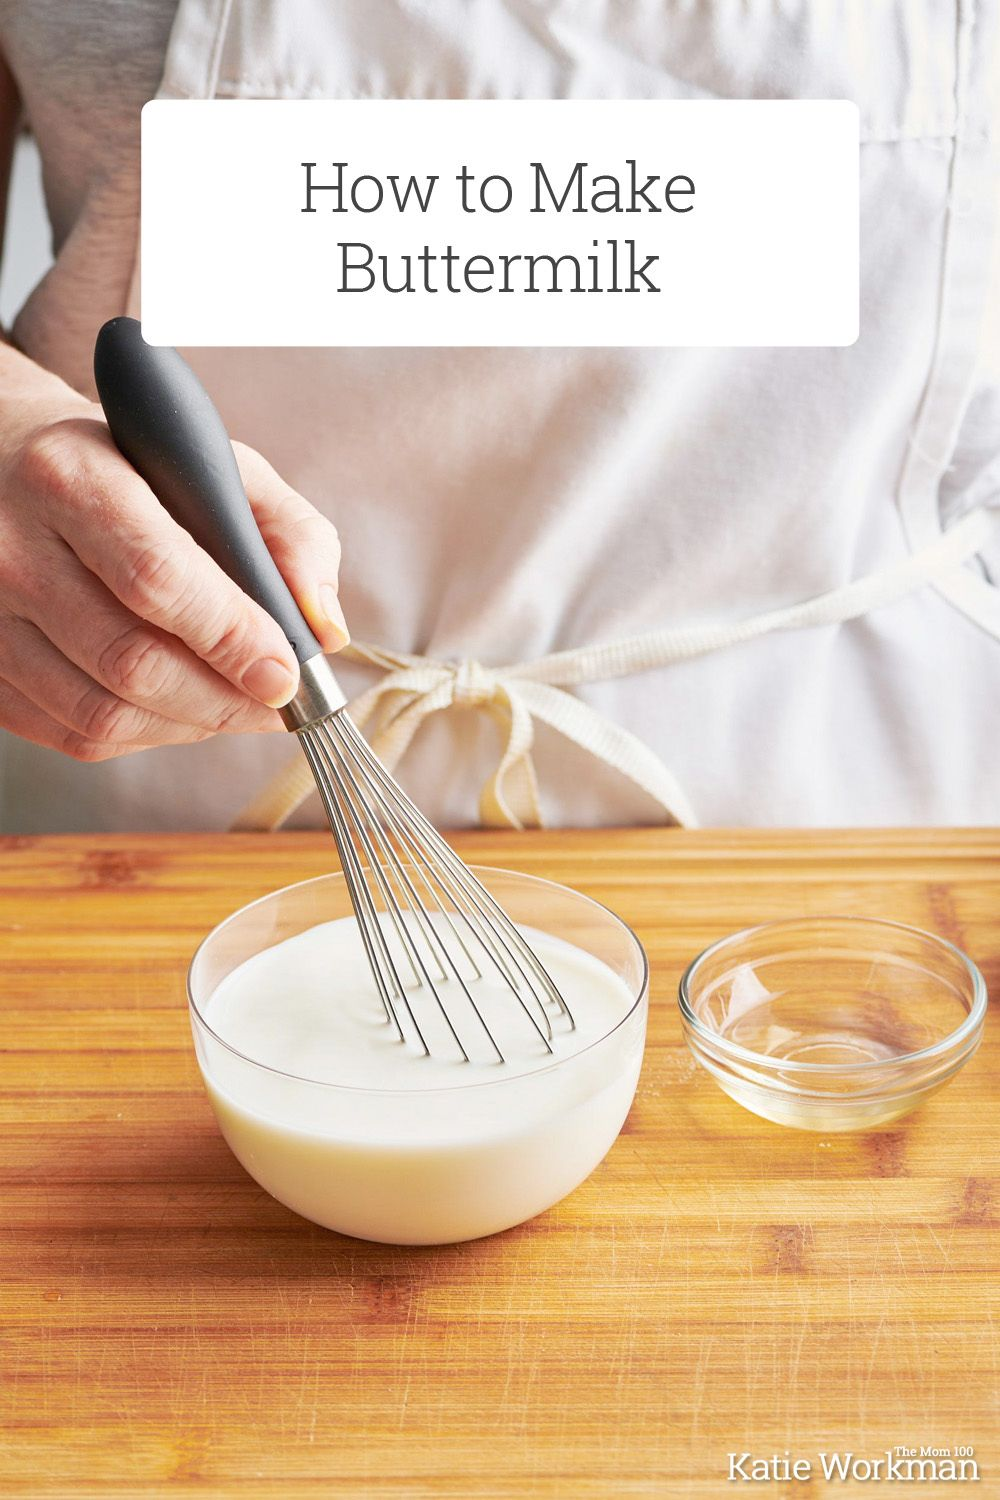 How To Make Buttermilk In 2020 How To Make Buttermilk Buttermilk Recipes Recipes